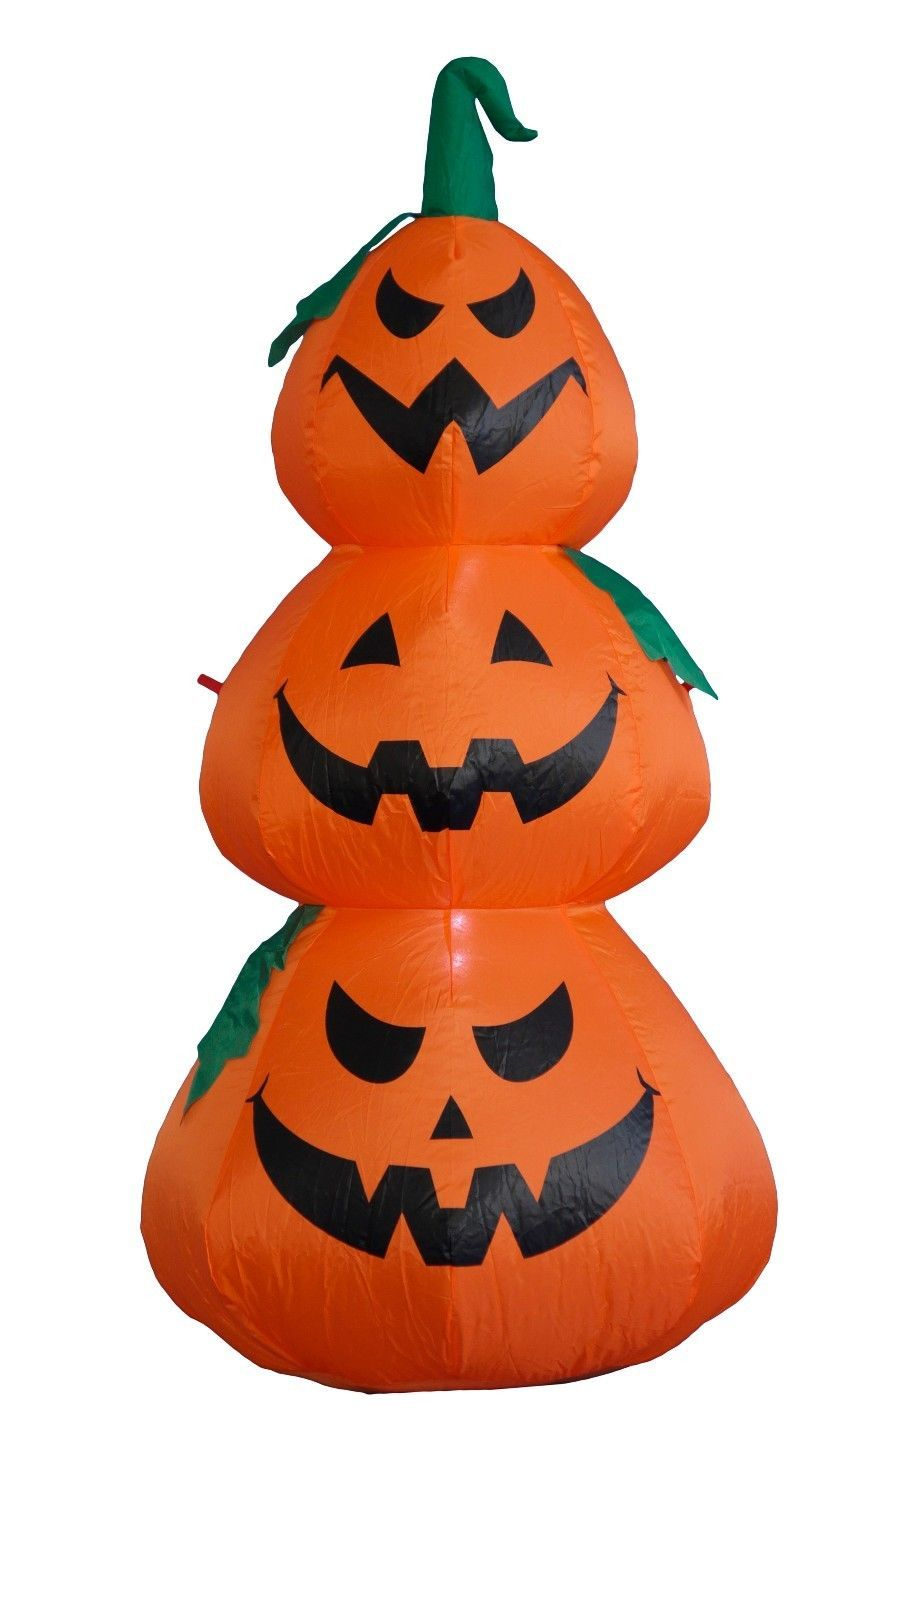 Halloween Inflatable Lighted Pumpkins Outdoor Indoor Garden Yard Decoration Prop